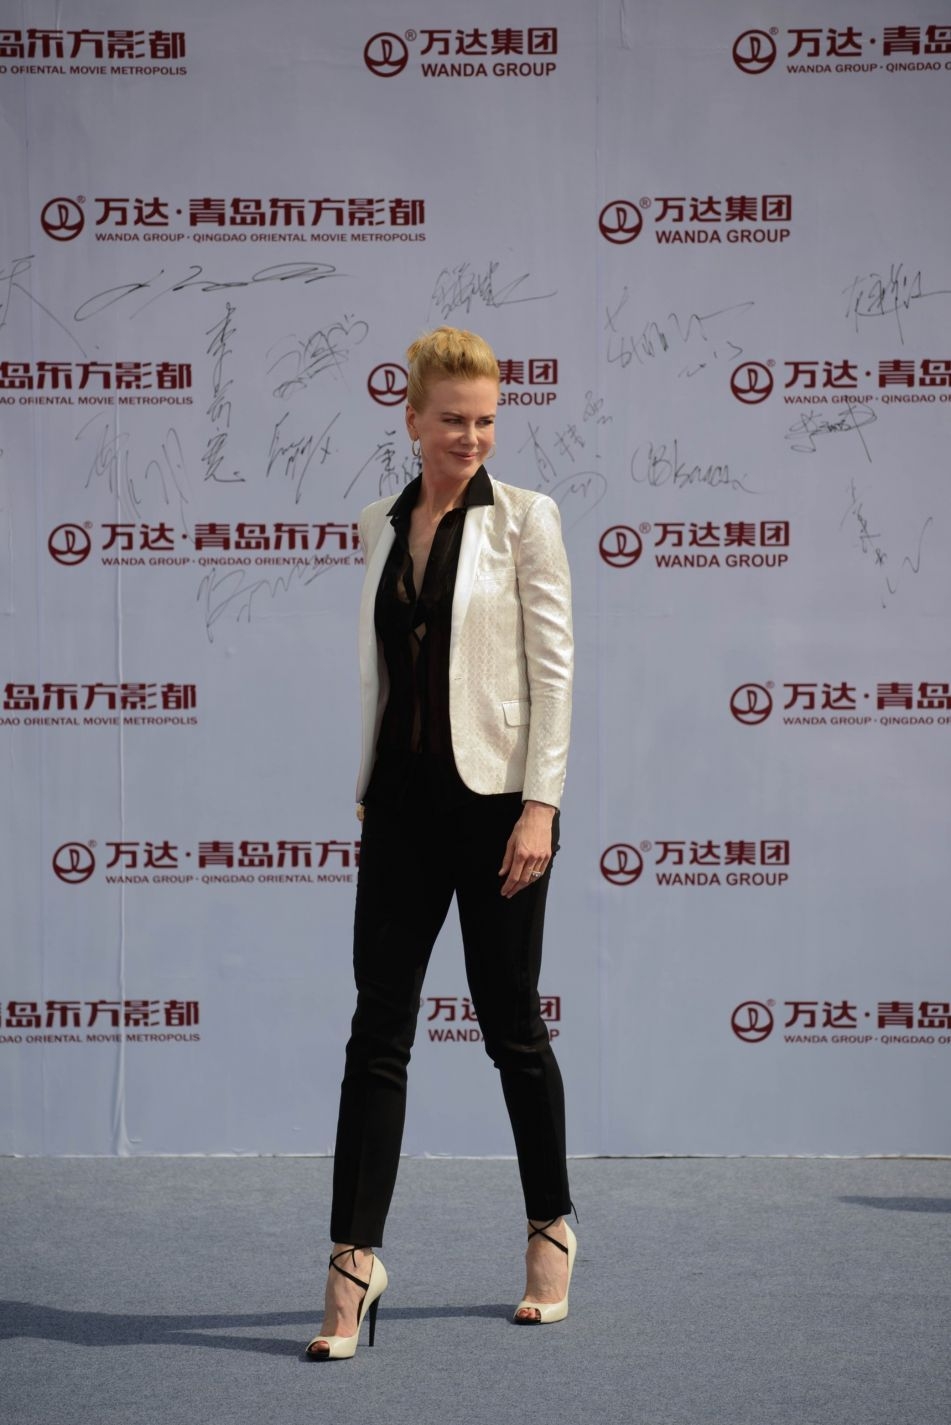 Nicole Kidman at Oriental Movie Metropolis Launch and Opening Ceremony, September 2013.